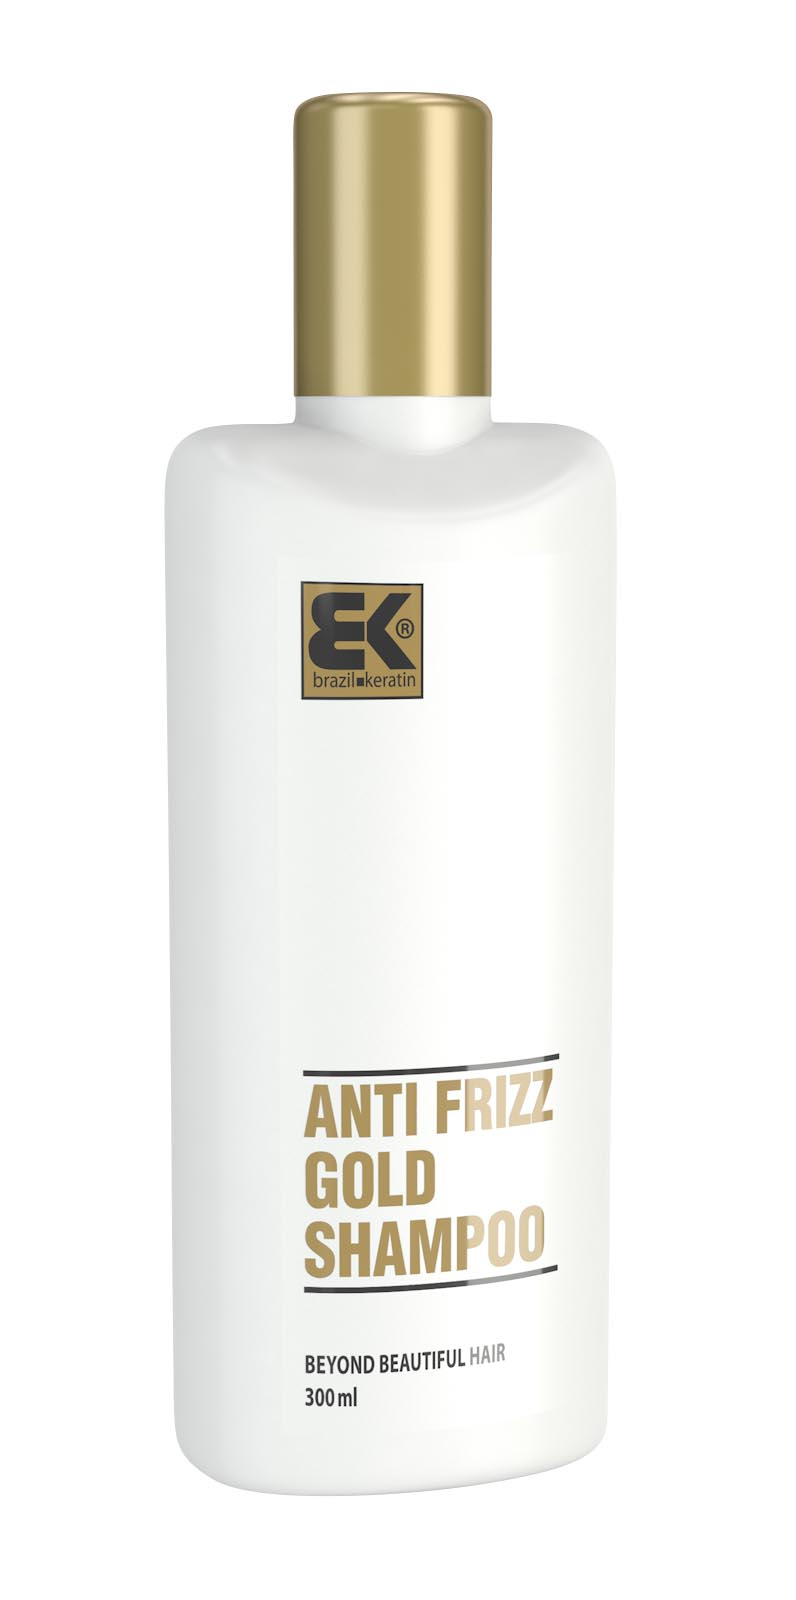 Brazil Keratin Shampoo Anti-Frizz Gold 300 ml